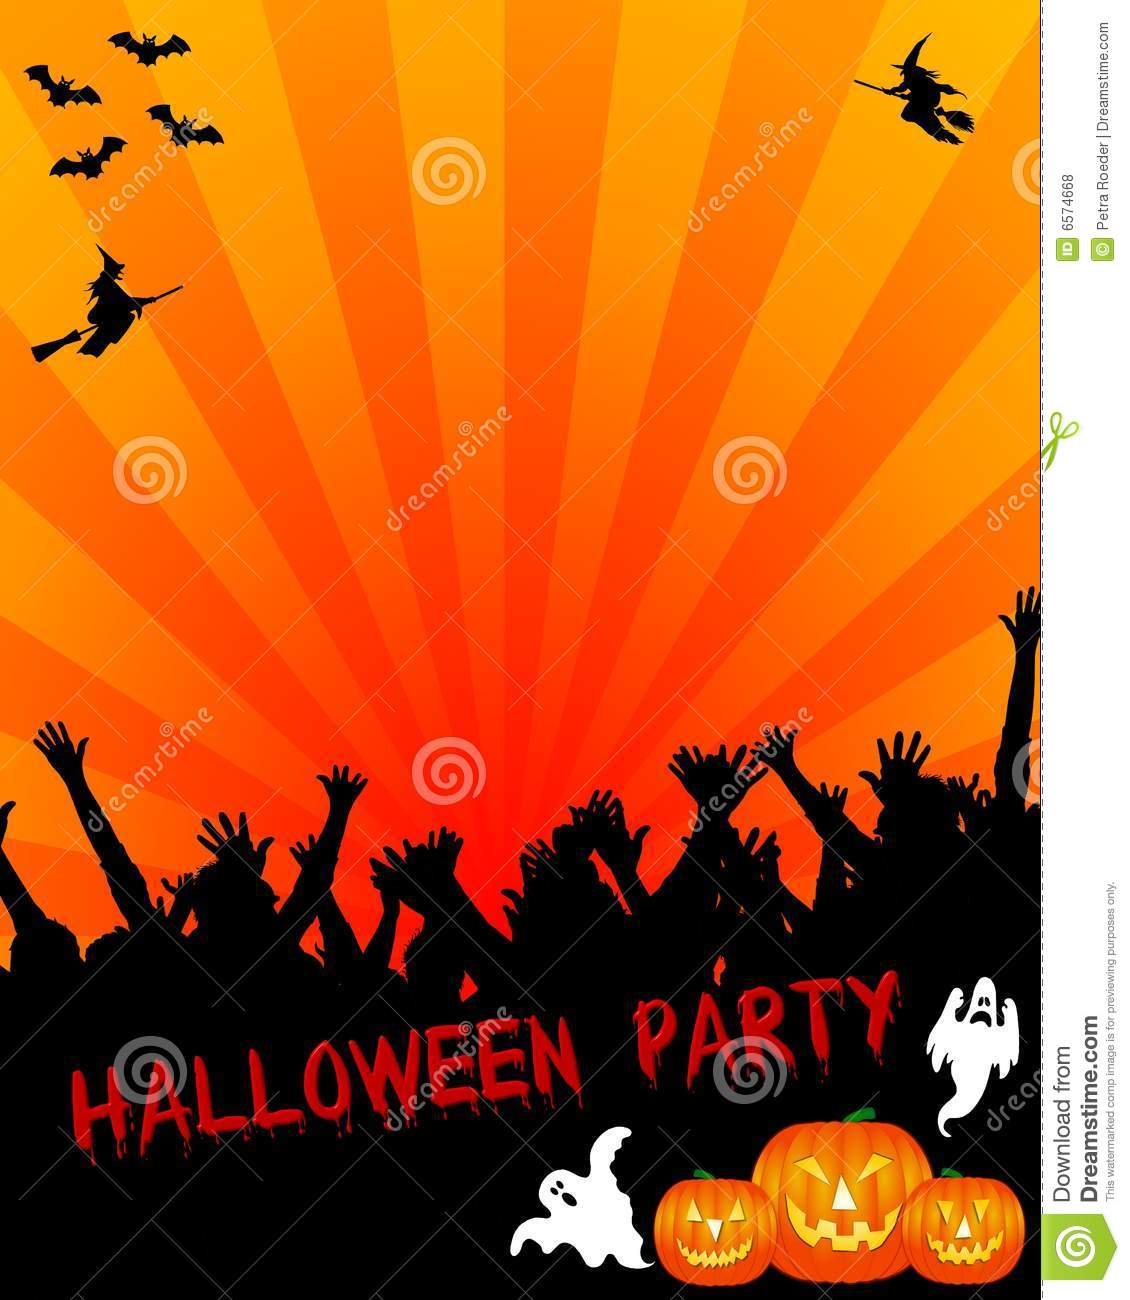 Halloween Party Invitation Stock Illustration Of